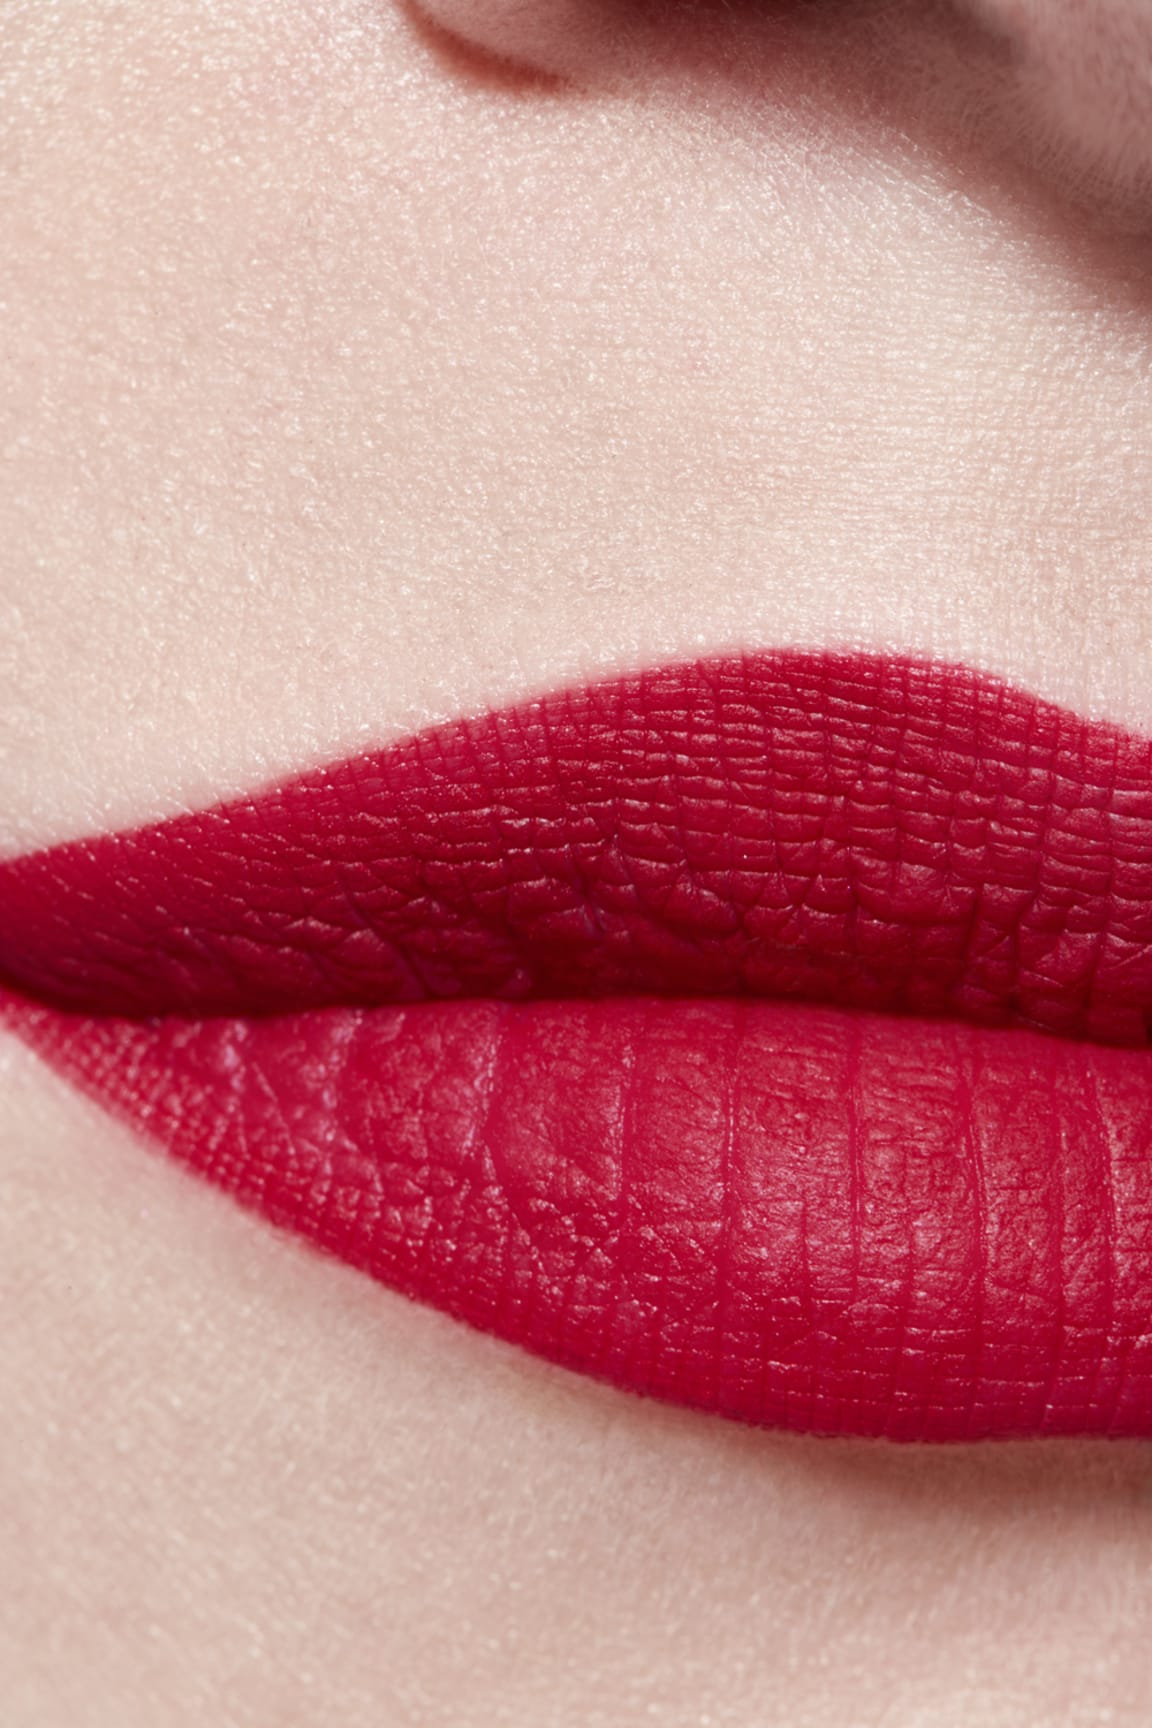 Toepassing make-up visual 3 - ROUGE ALLURE VELVET LE LION DE CHANEL 257 - ROUGE TRIOMPHAL